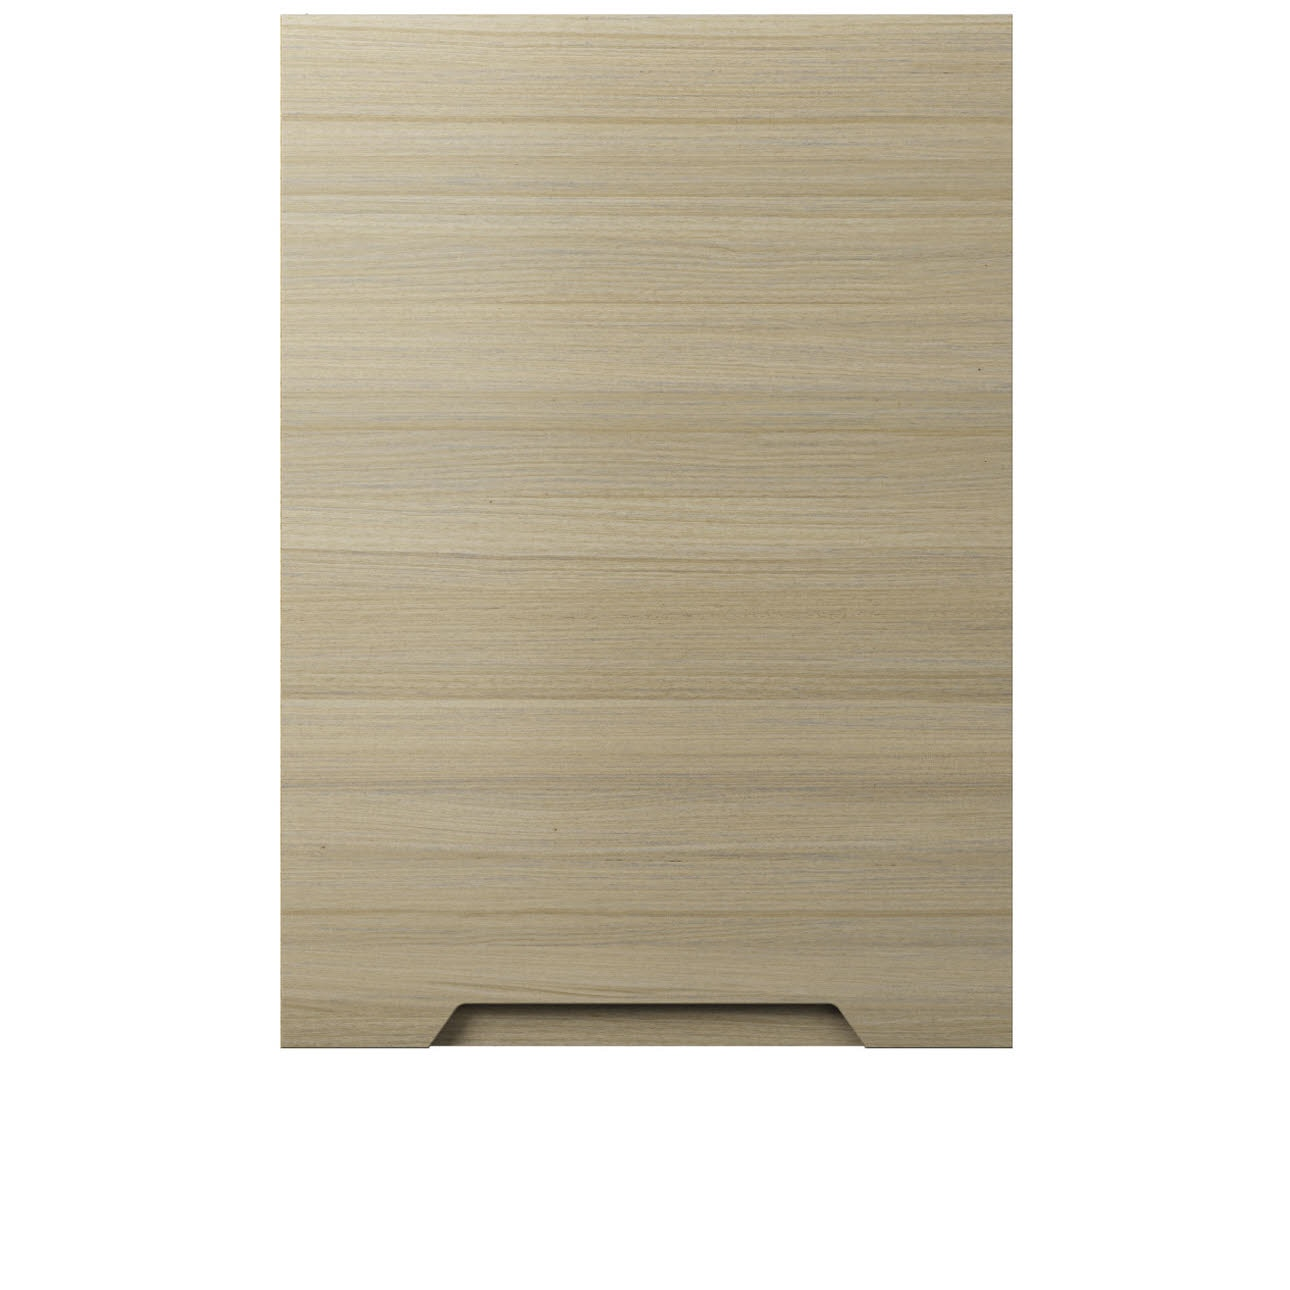 Tendens White Oak Veneer | HTH